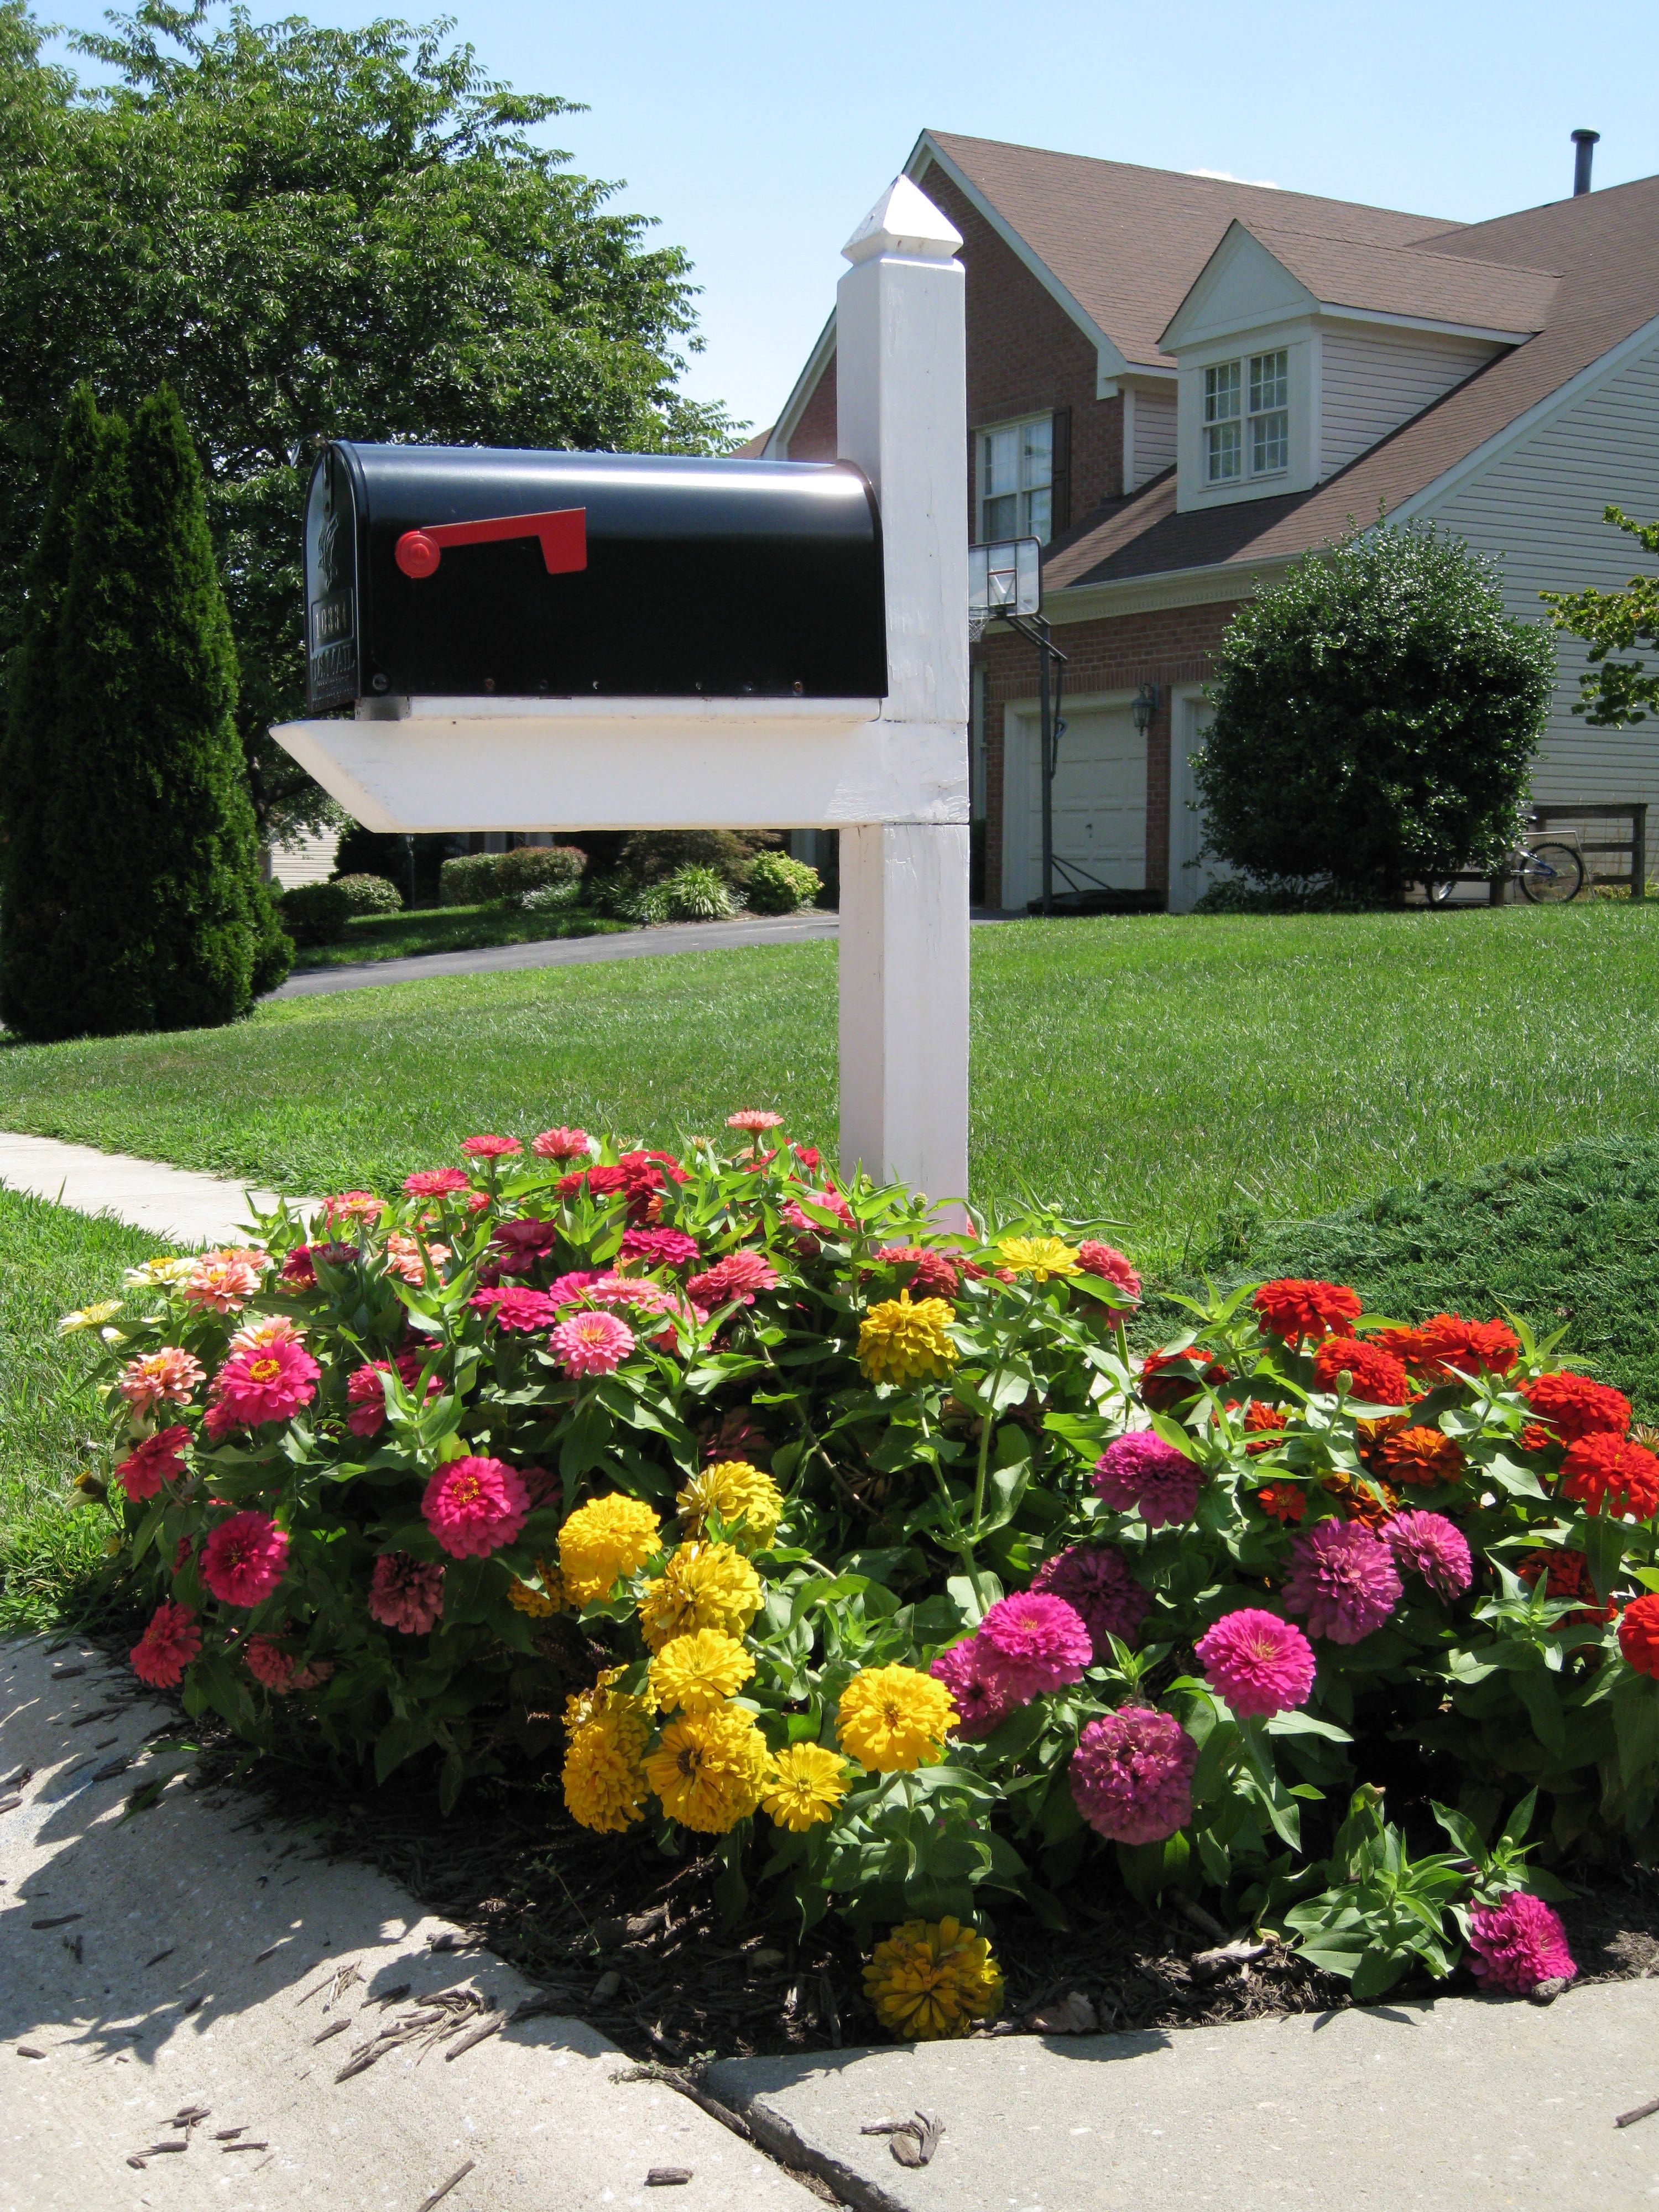 Mailbox gardening zinnia beds for scorching summer color for Flower garden landscape